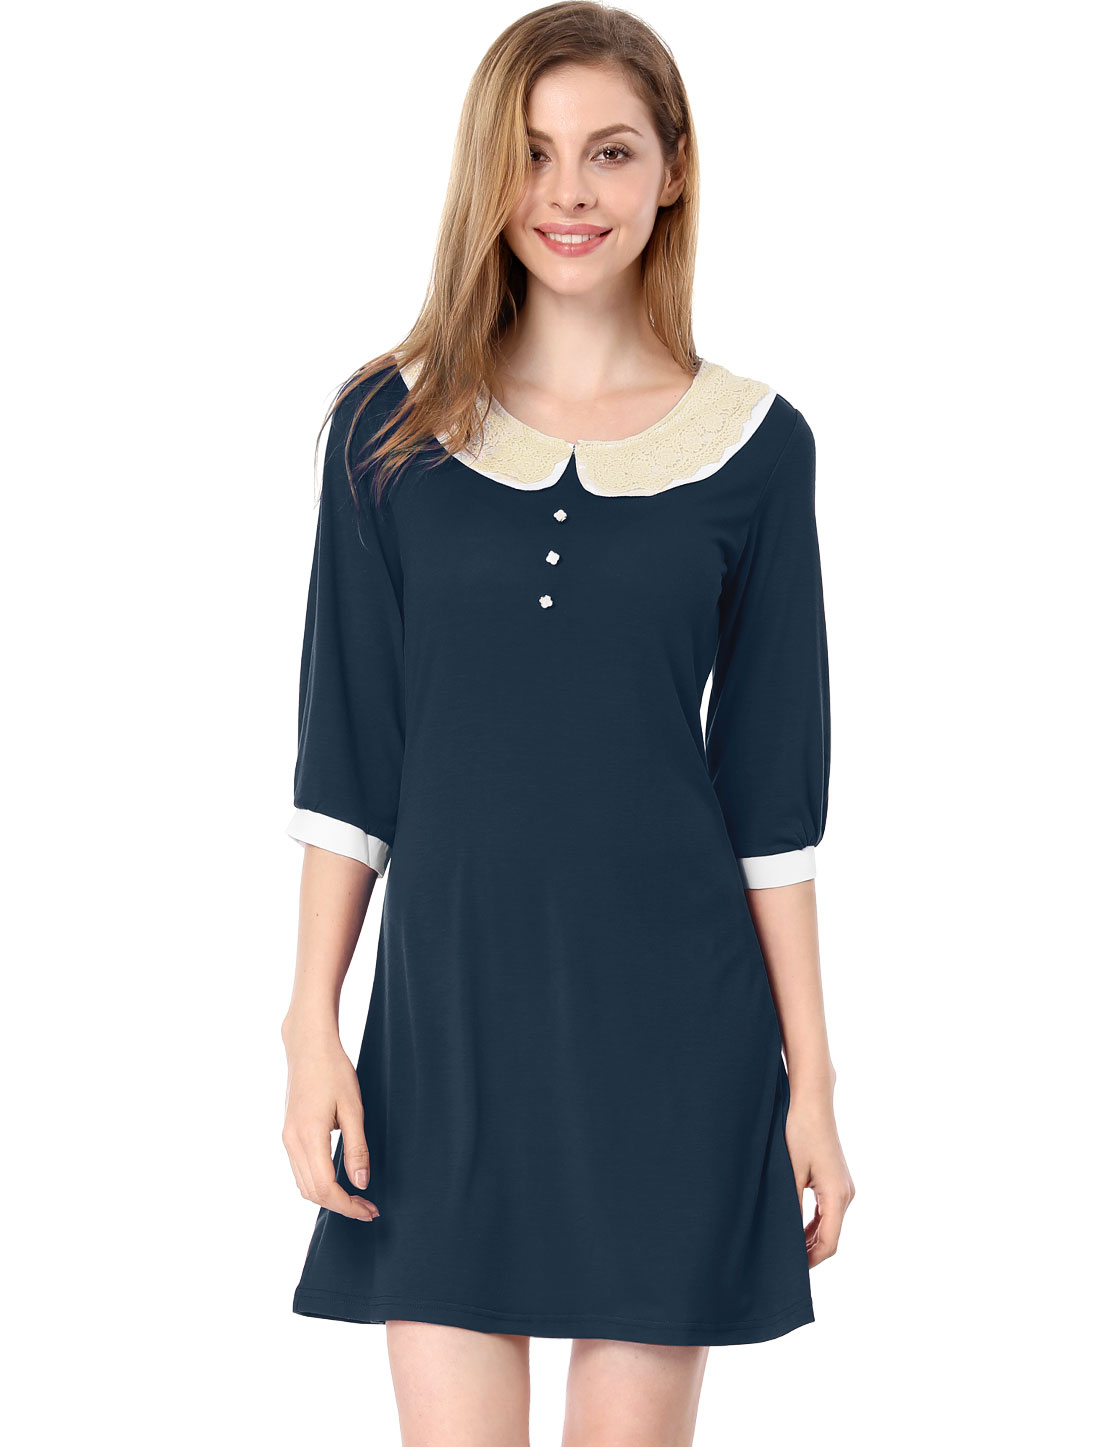 Woman Doll Collar 3/4 Sleeves Dark Blue A-Line Above Knee Dress L